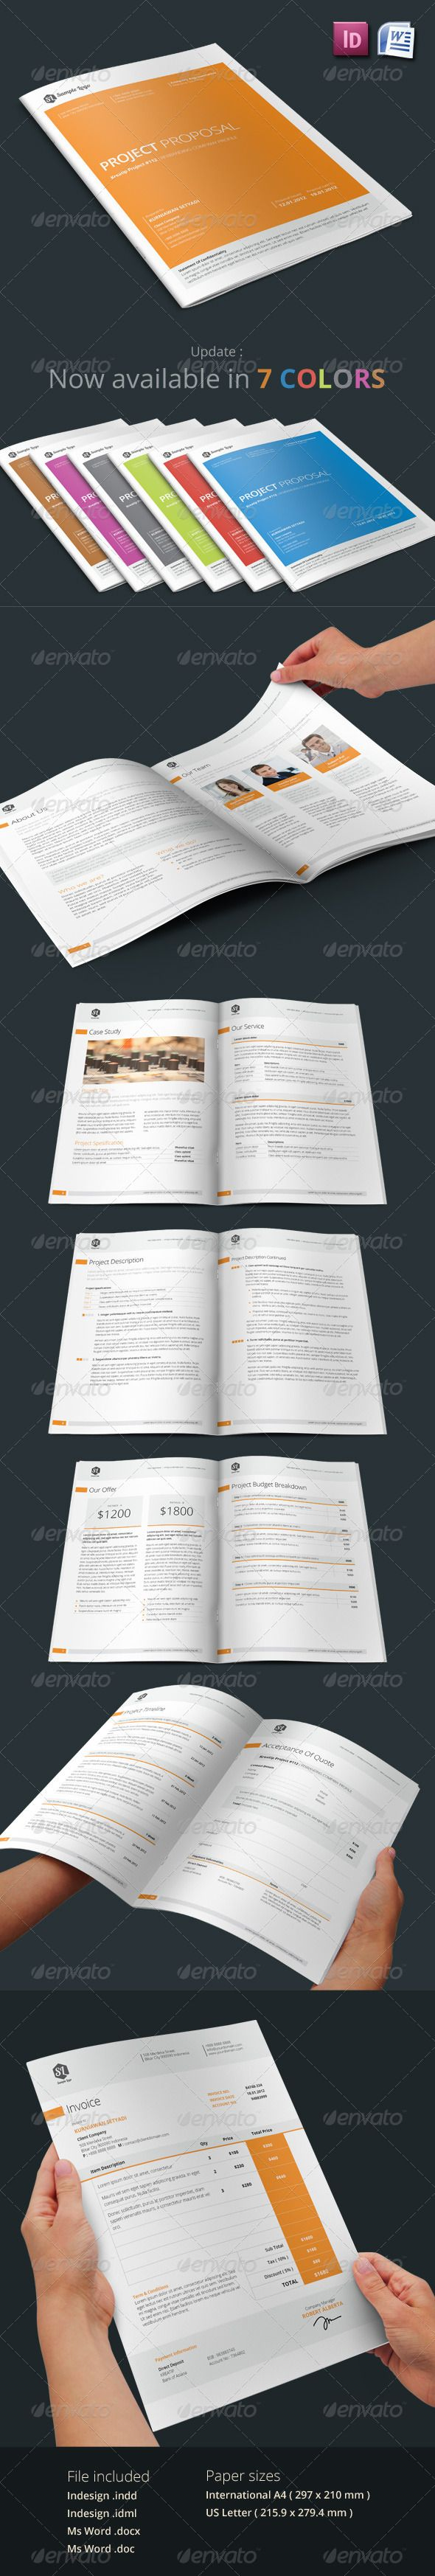 Kreatip - Proposal Template  #GraphicRiver        Layered: Yes MinimumAdobeCSVersion: CS5 Tags: aboutus #agreement #brief #businessproposal #casestudy #clean #colours #contract #creative #formgraphic #invoice #projectdescription #projectproposal #proposal #proposalacceptance #proposaltemplate #quotationquote #template #webproposal #websitecomission #websiteproposal #word #wordtemplate #www #wwwproposal